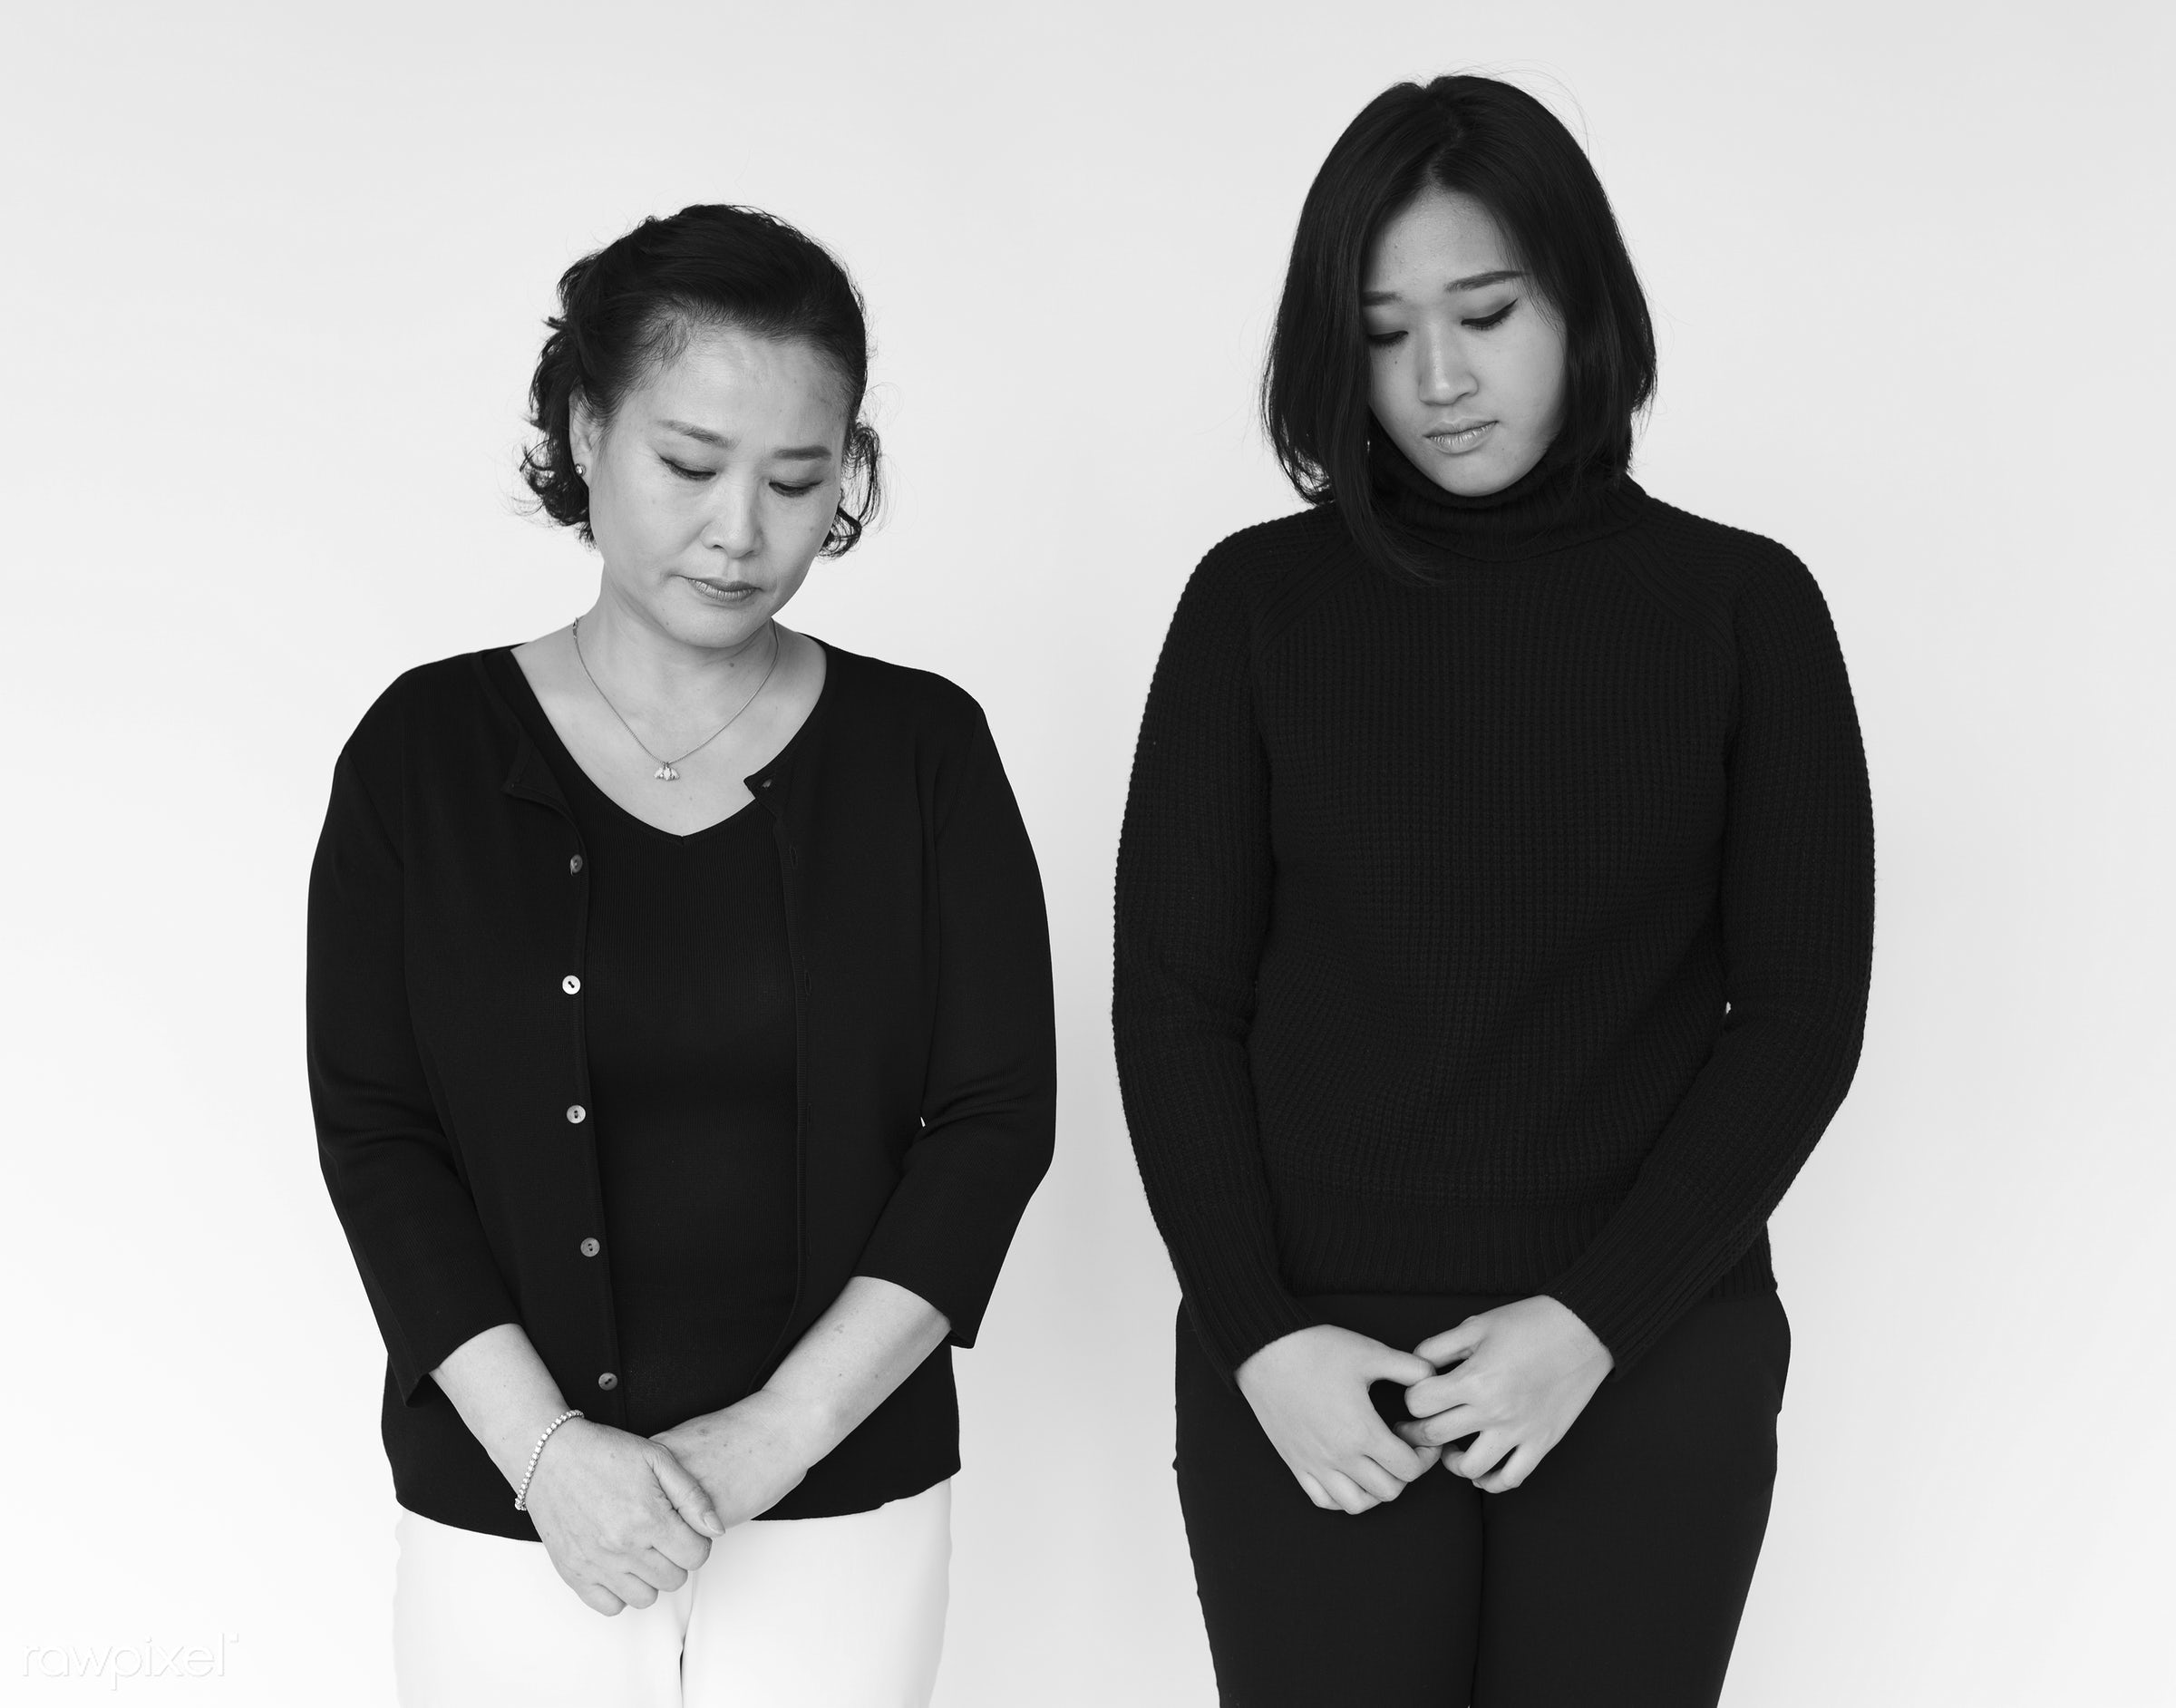 studio, expression, person, sad, people, together, asian, love, family, woman, isolated, white, bad, disappointed, portrait...